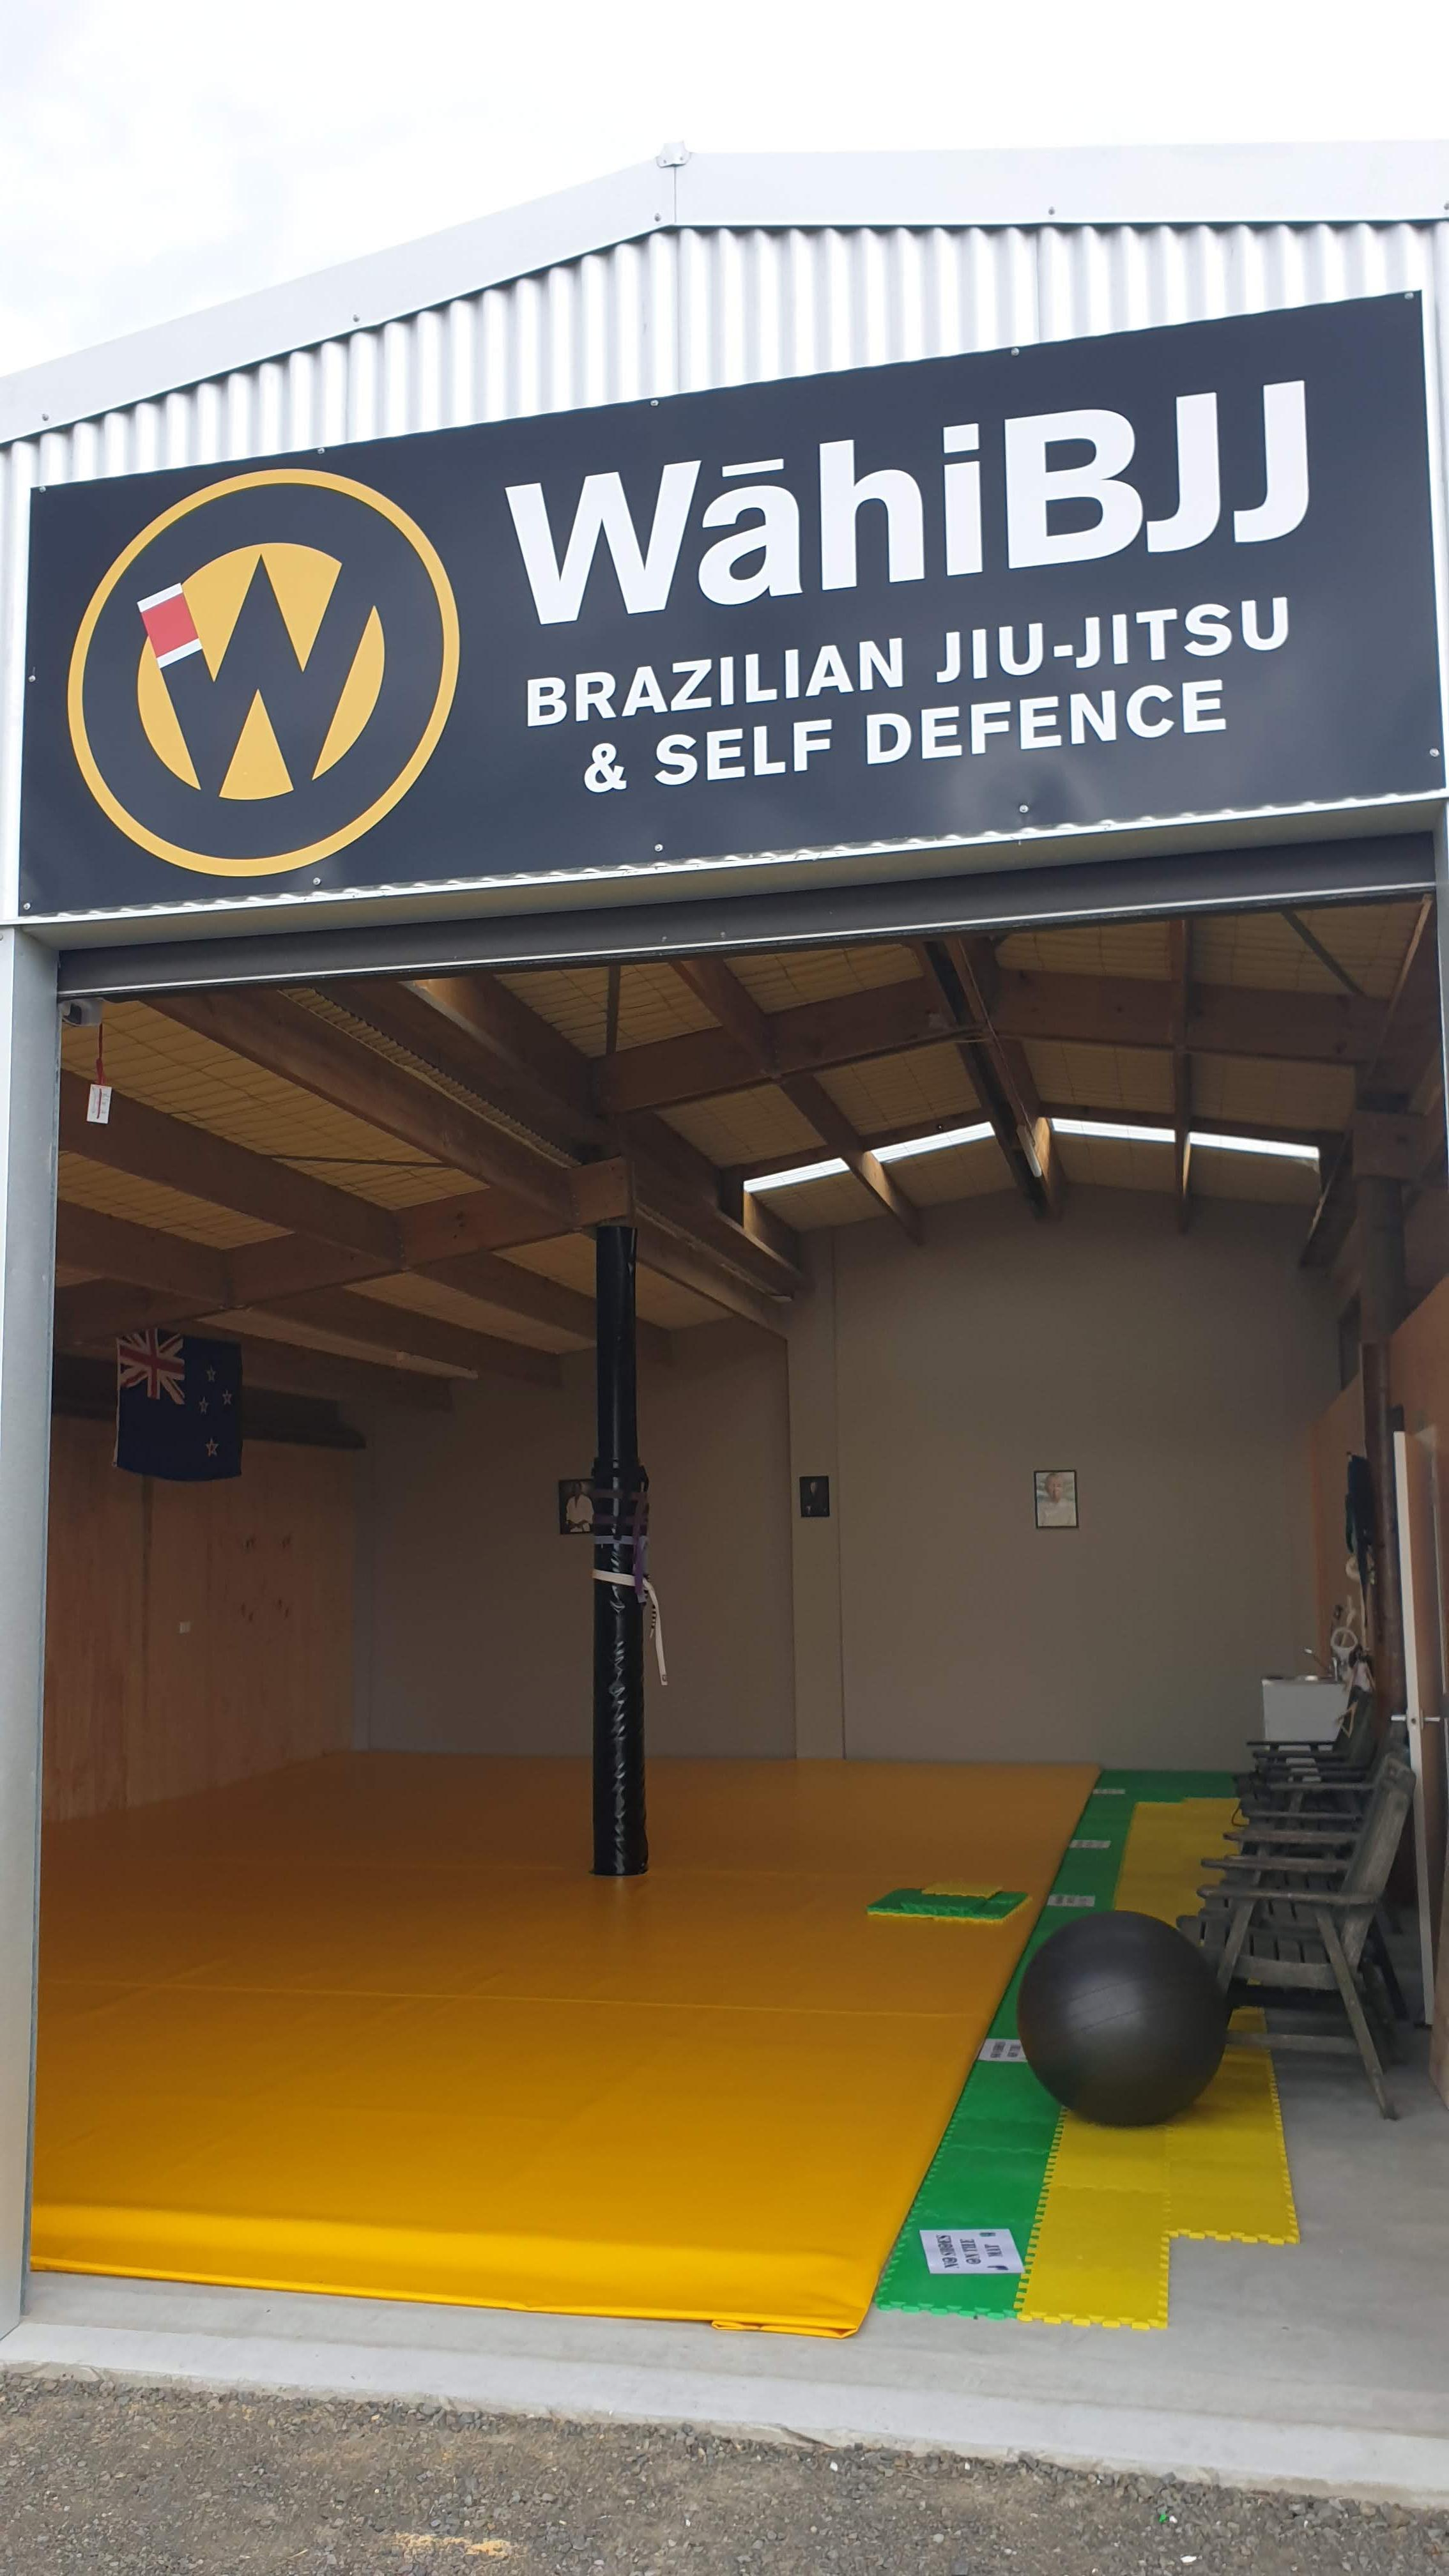 Outside WahiBJJ